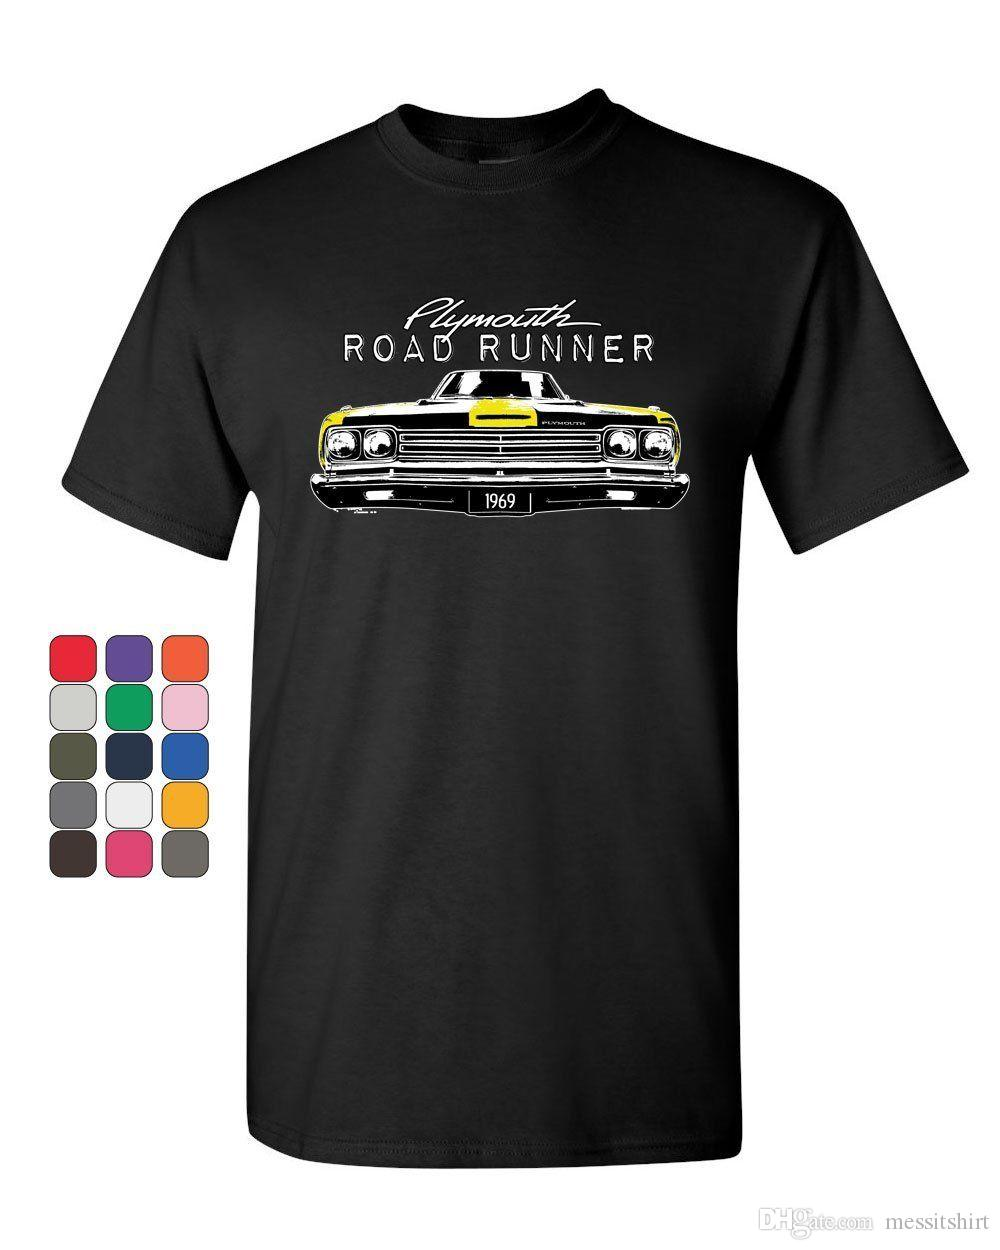 718d12a7 Plymouth Road Runner 1969 T Shirt Route 66 American Made Classic Mens Tee  Shirt Buy Cool Shirts Online Funny T Shirt Sites From Messitshirt, $13.19|  DHgate.